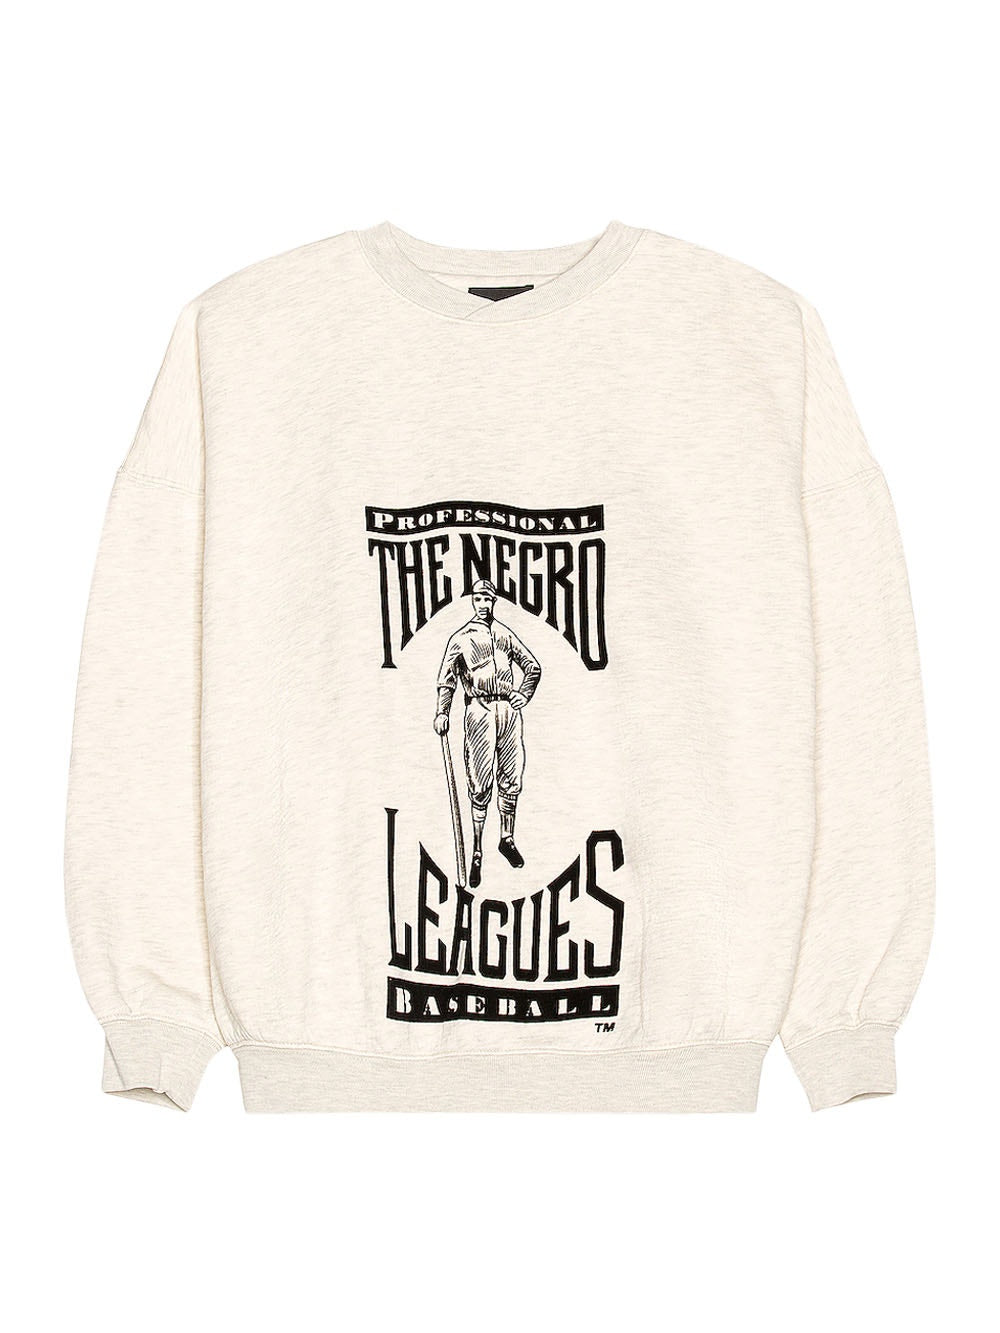 Cream Heather Negro Leagues Tribute Sweatshirt